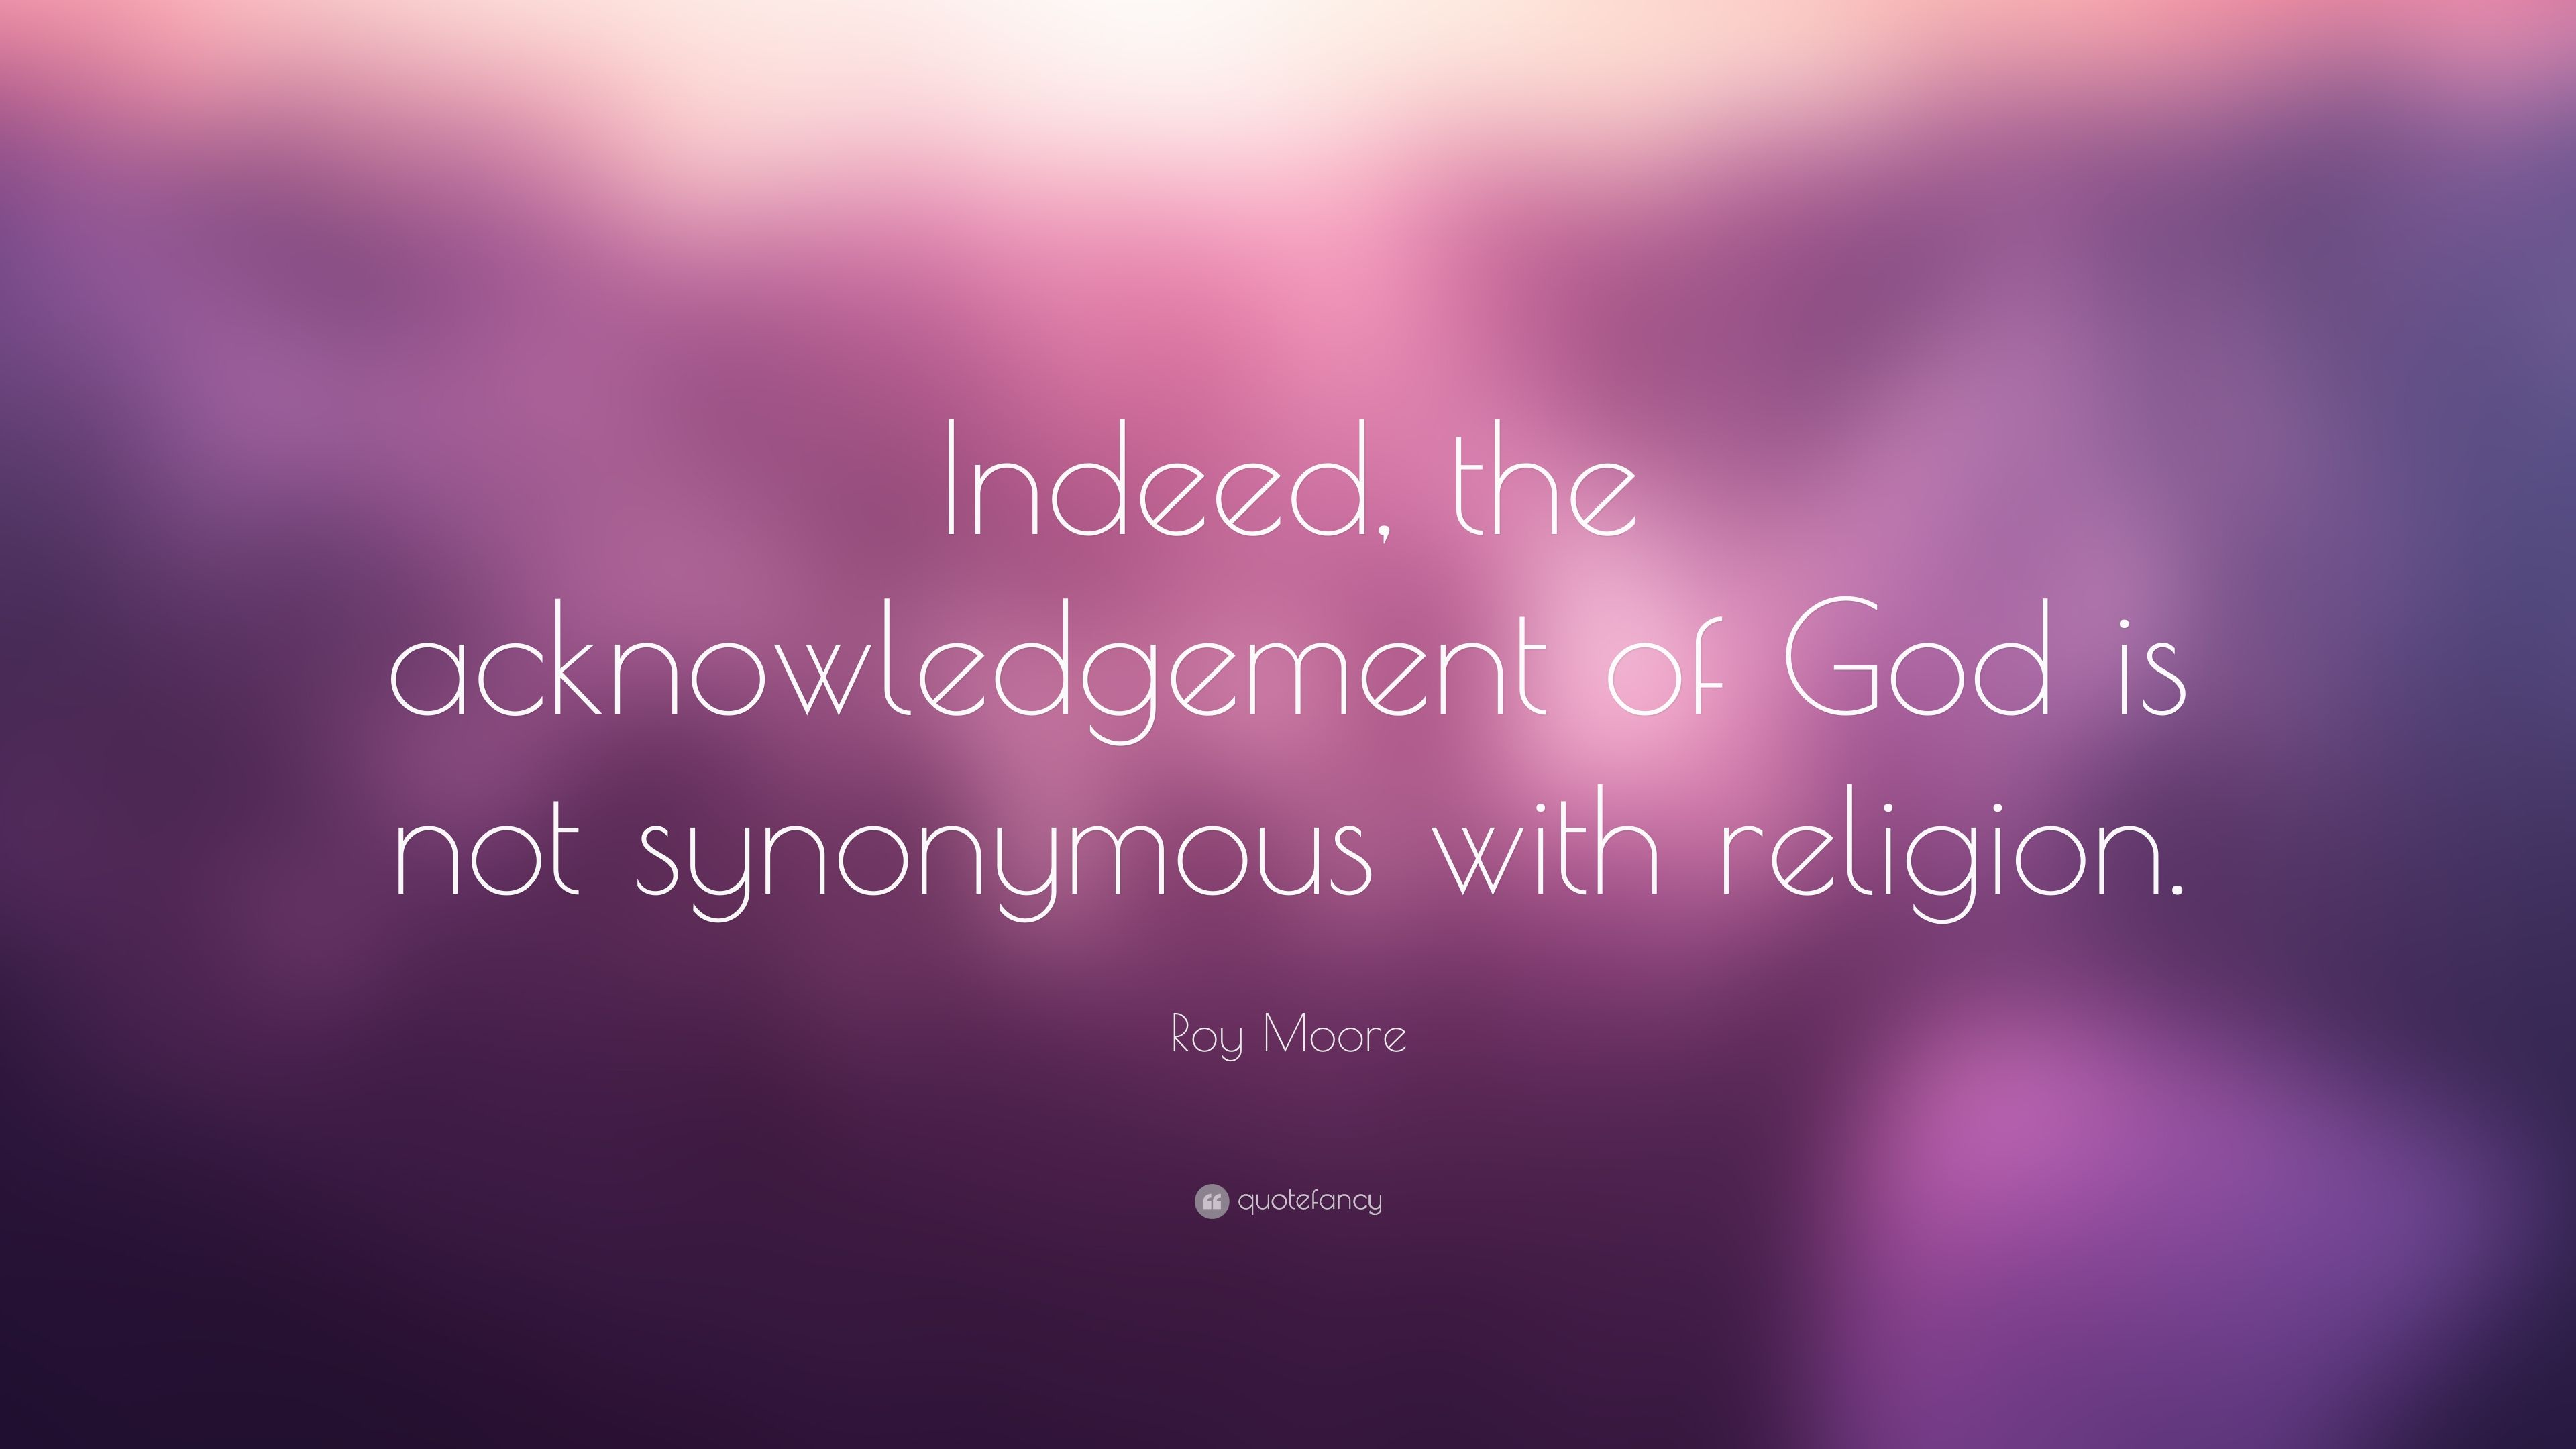 Roy moore quote indeed the acknowledgement of god is not roy moore quote indeed the acknowledgement of god is not synonymous with religion altavistaventures Images